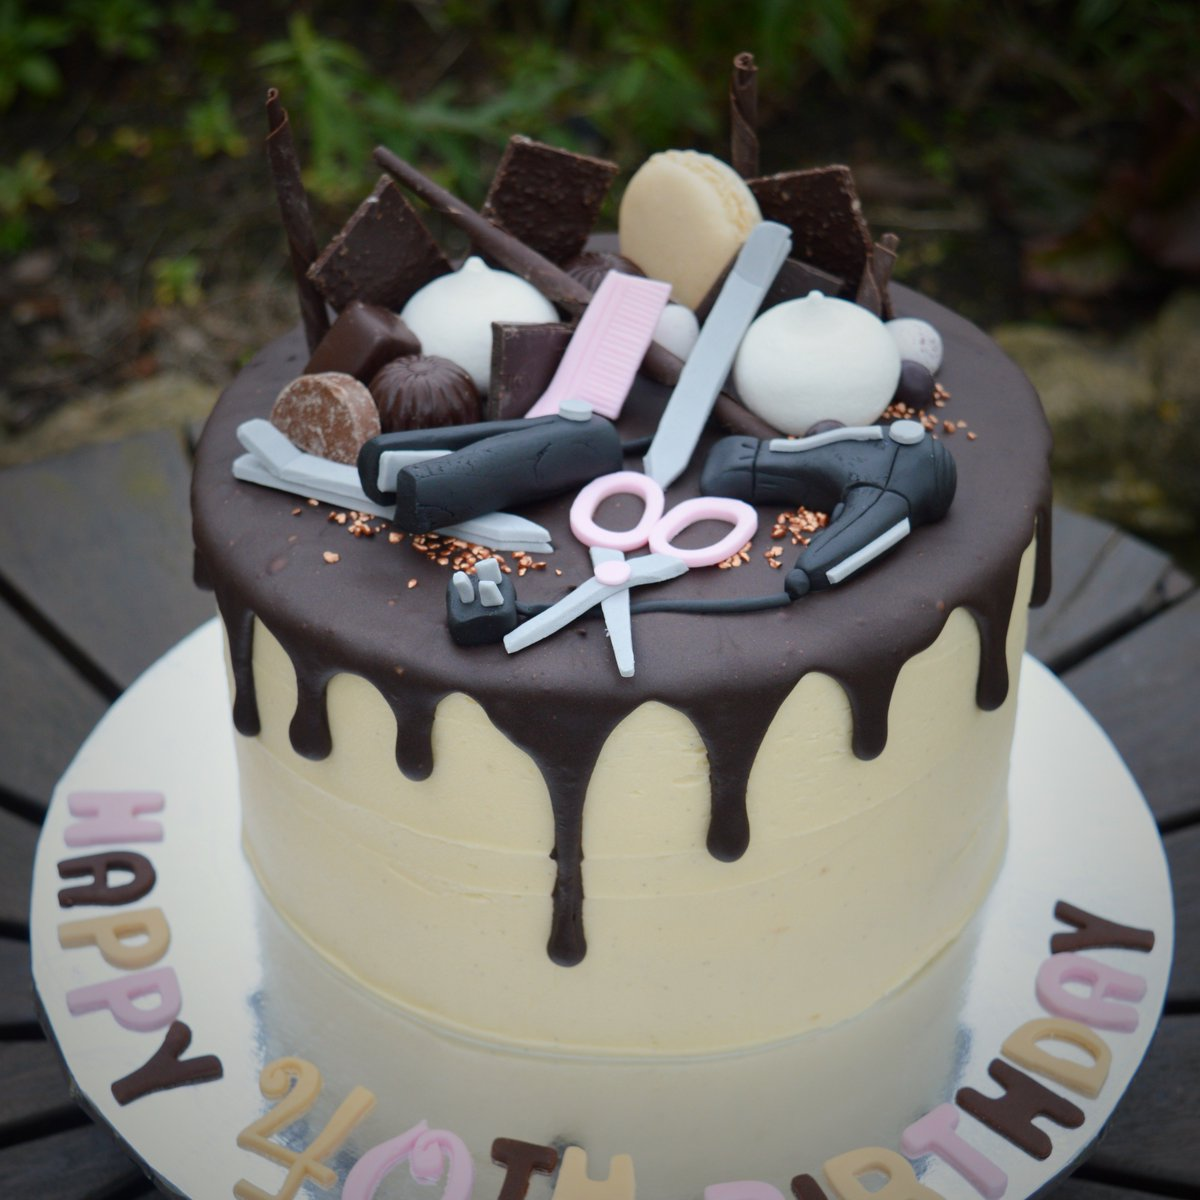 A Special Birthday Cake For Hairdresser Definitely The First Time I Ve Made Fondant Hair Straighteners Wiltshire Birthdaycake Hybirthday